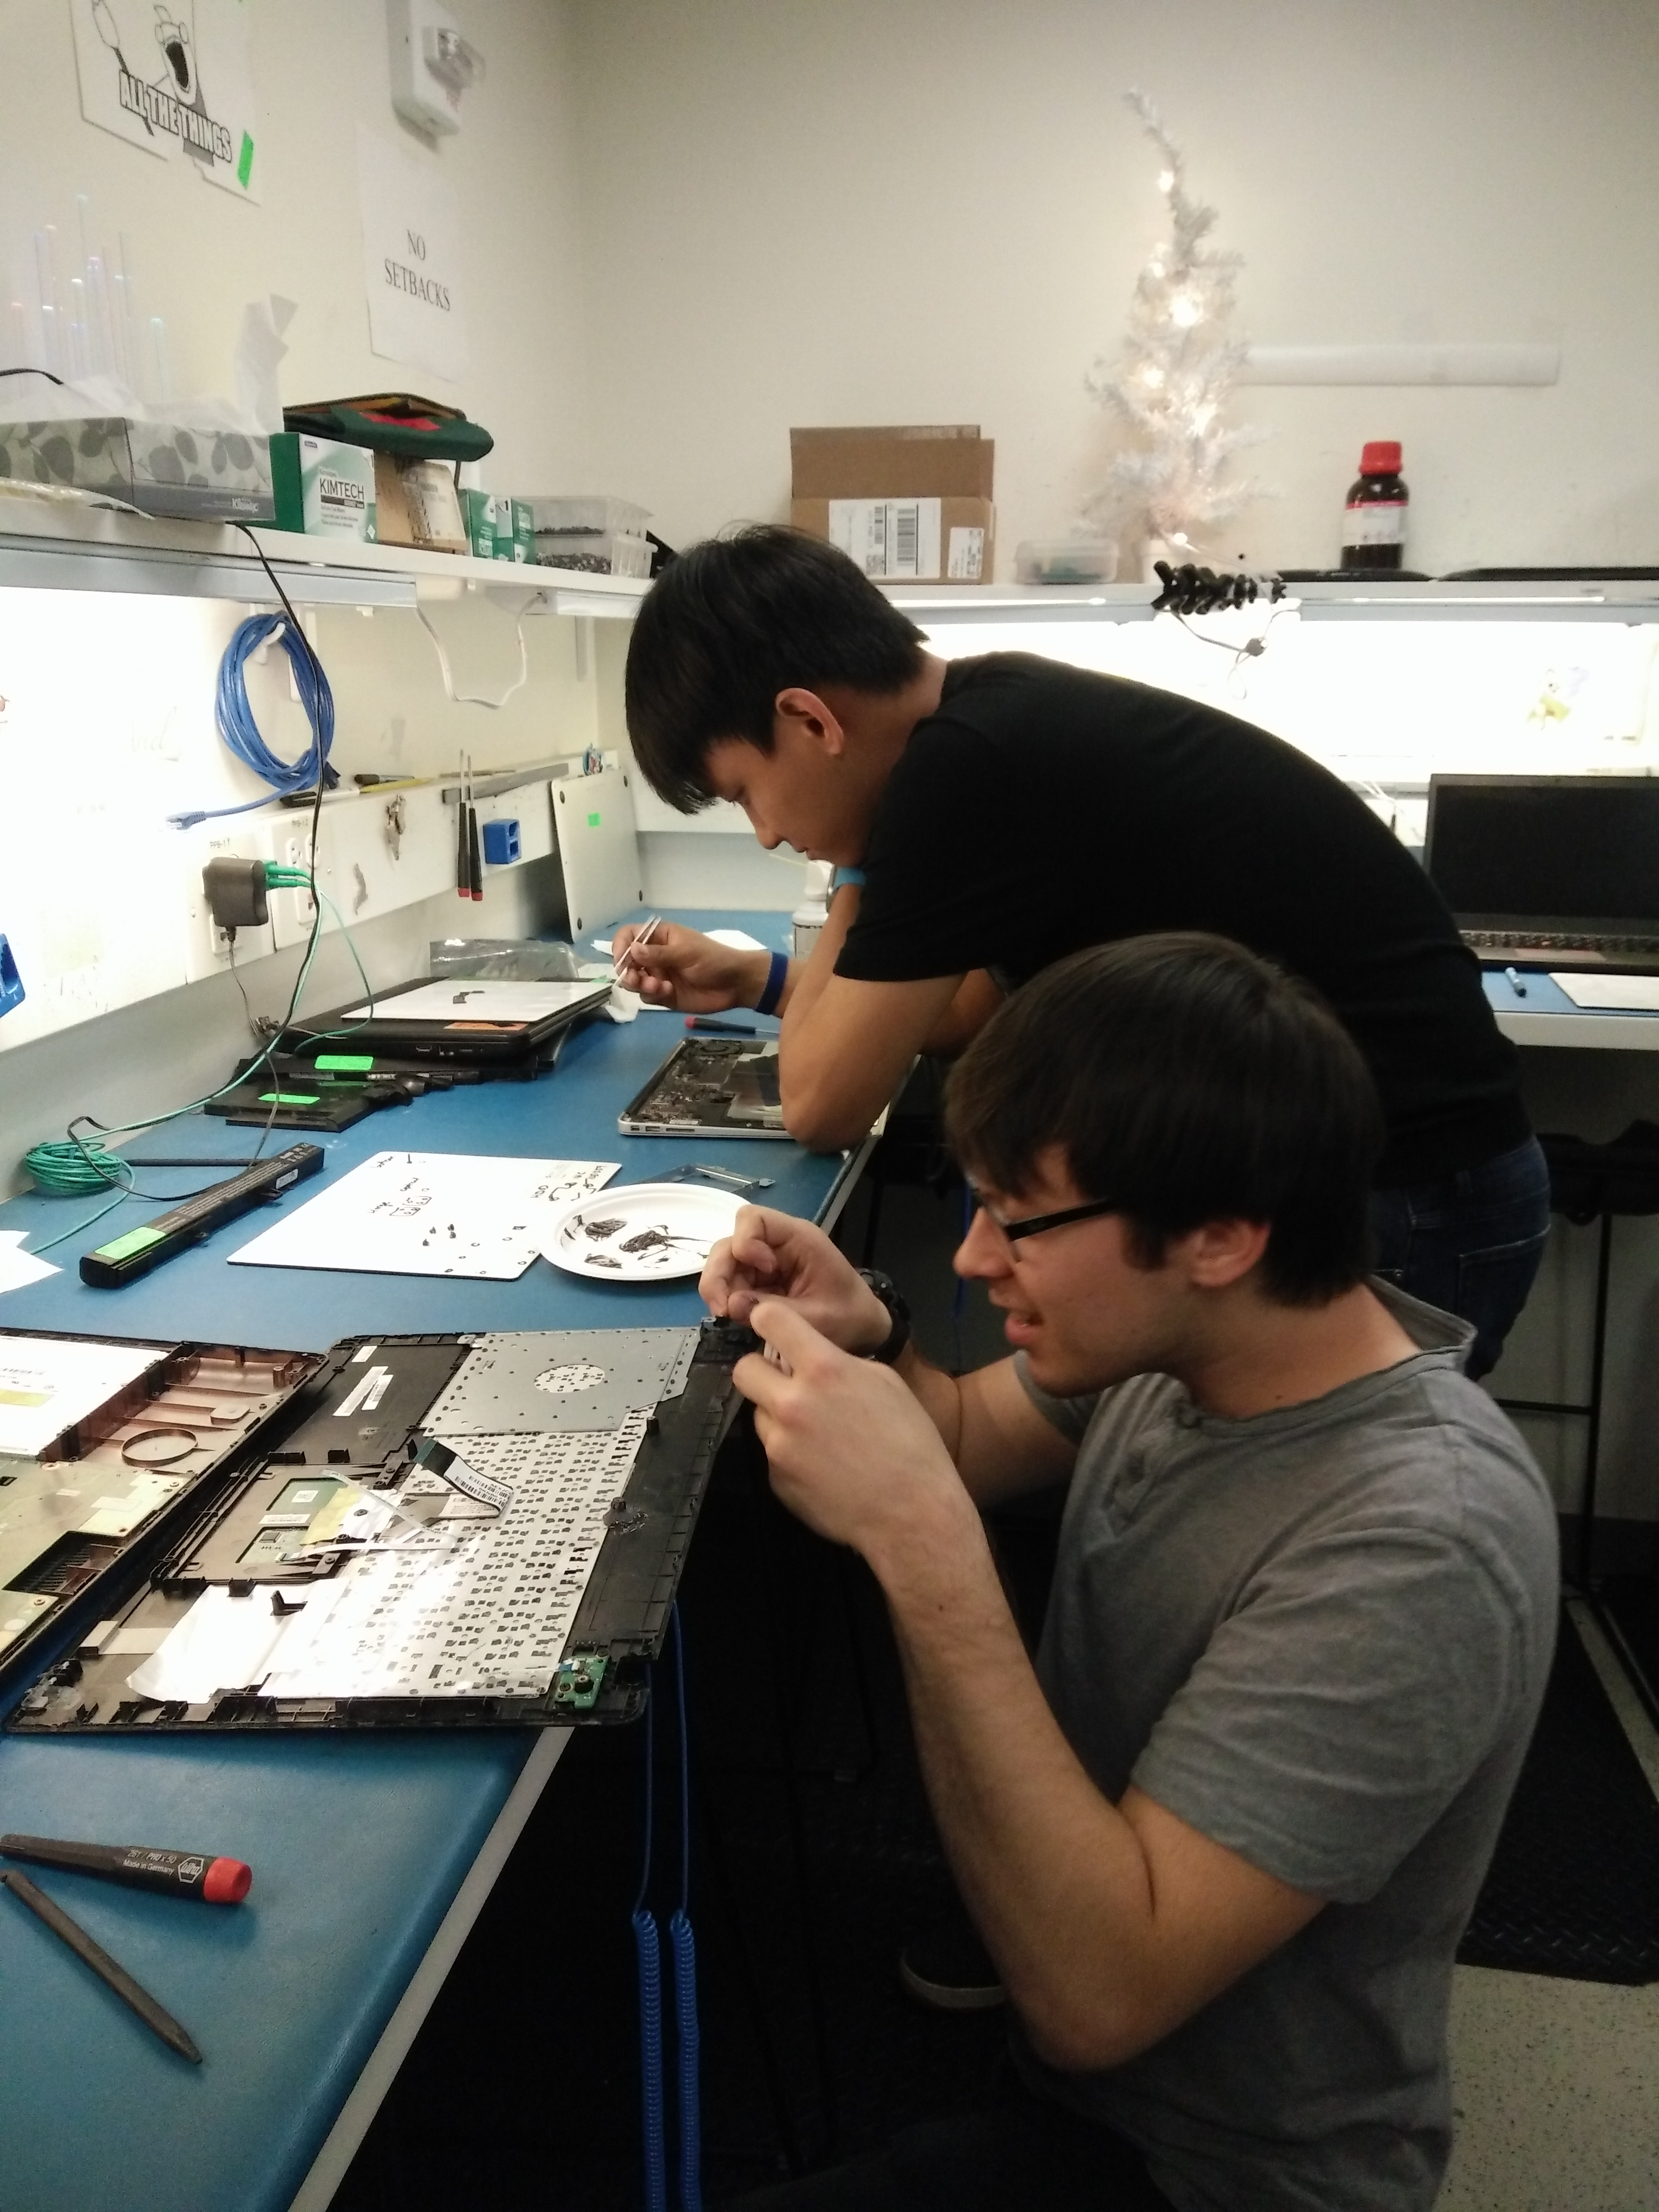 Student Techs working on hardware